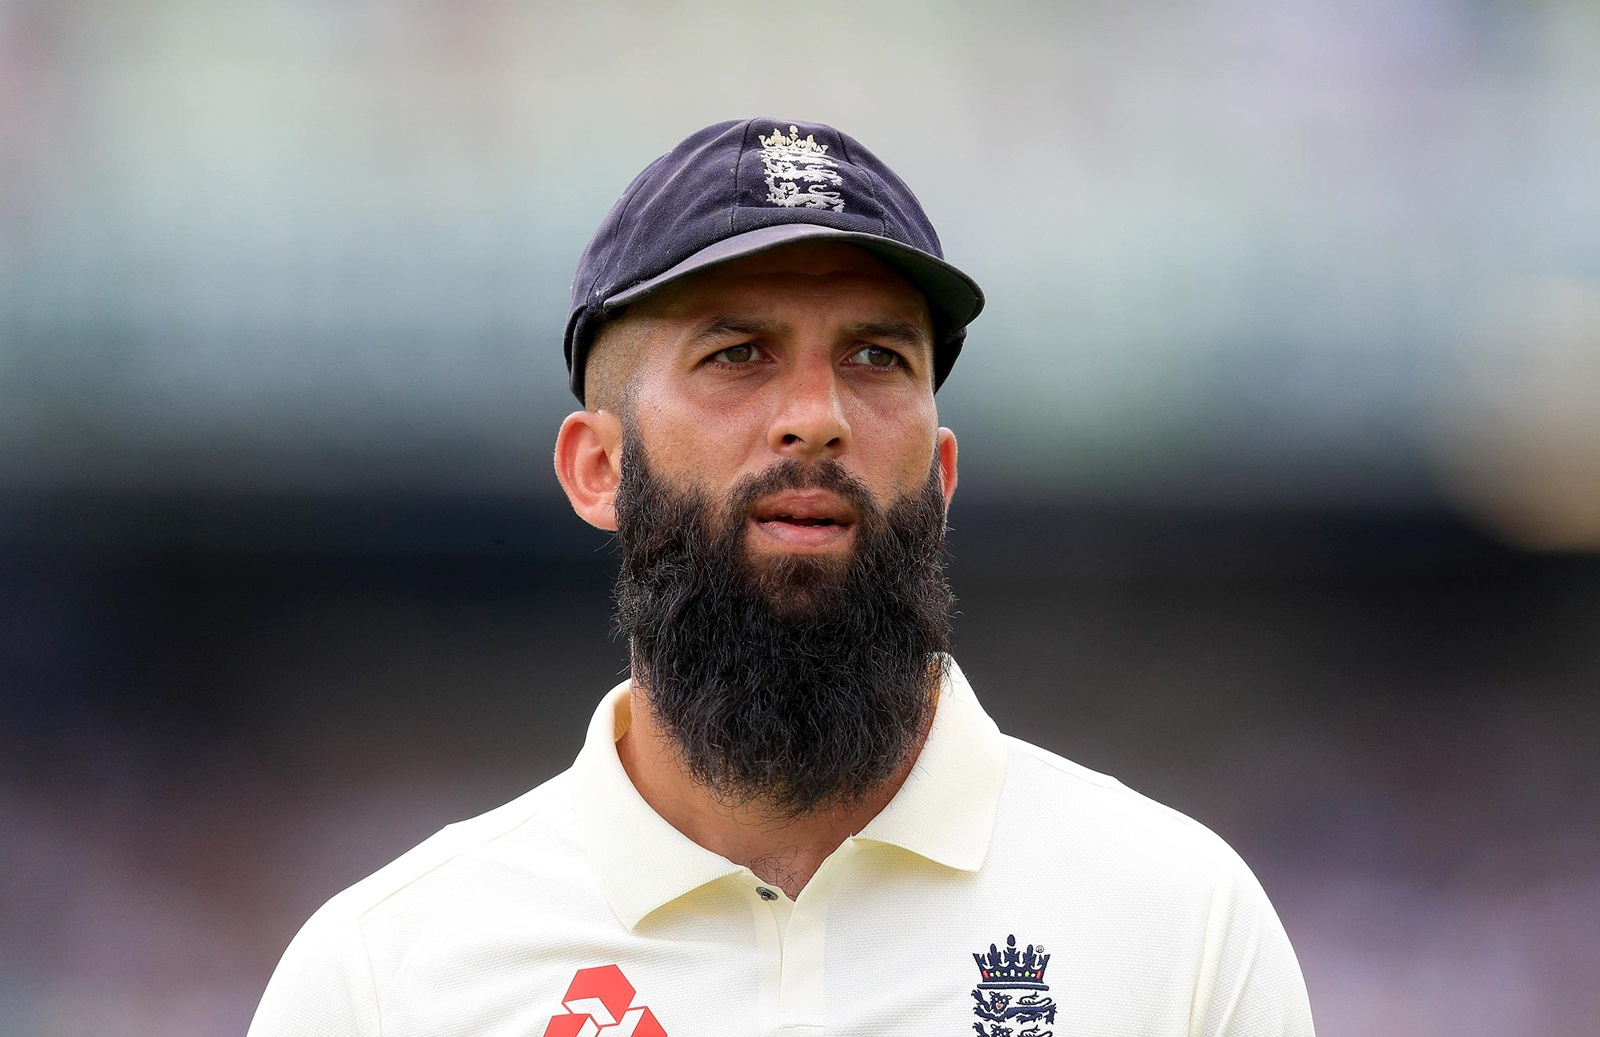 Moeen Ali to return home, miss final two Tests   cricket.com.au